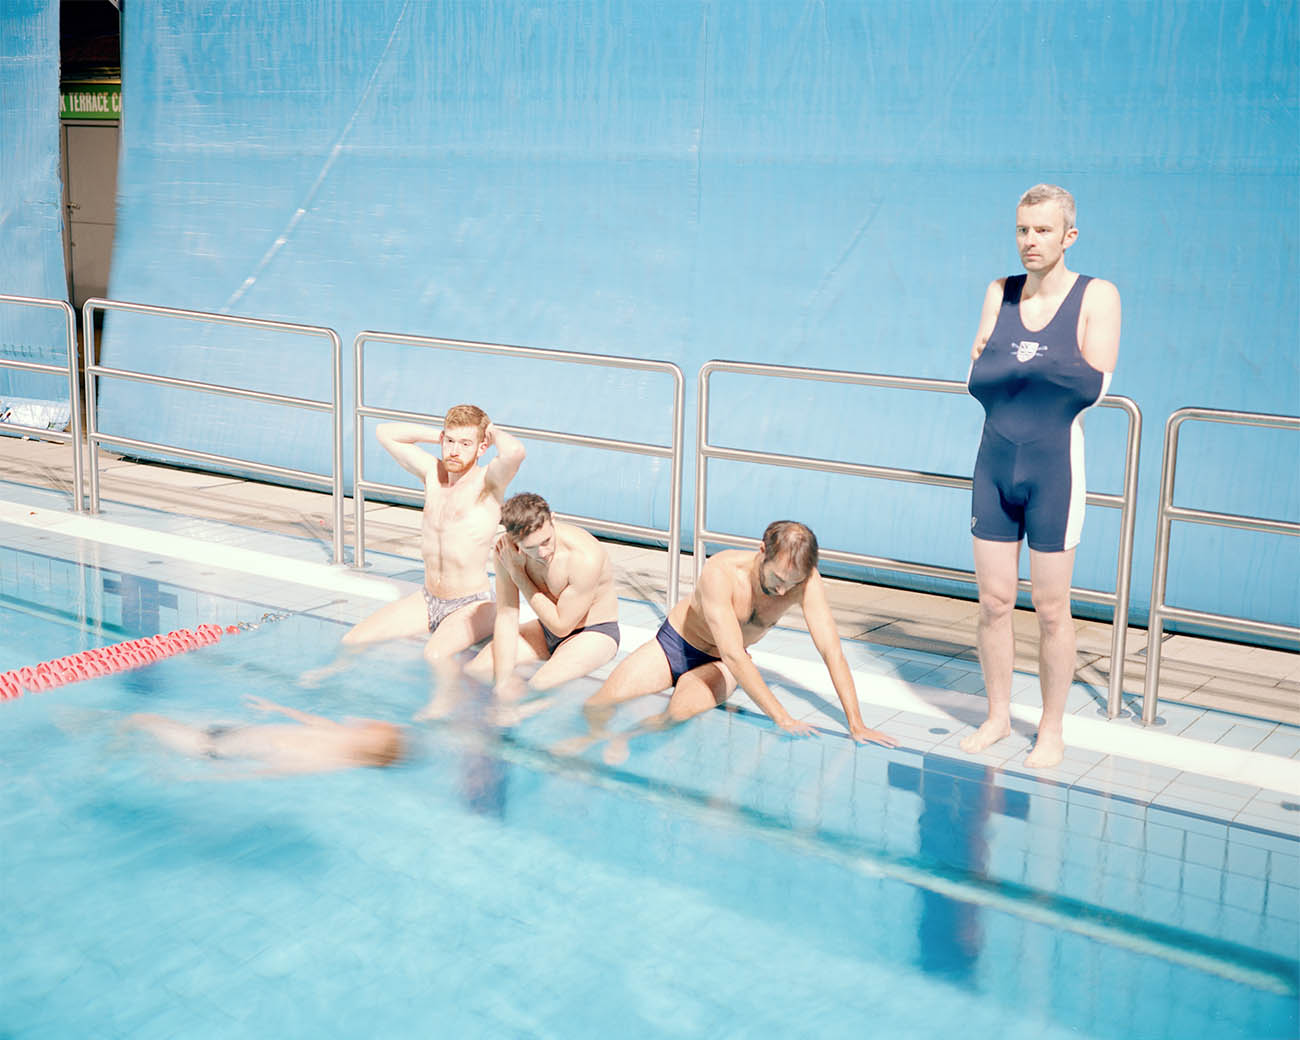 Divers. London Fields Lido,London, 2015